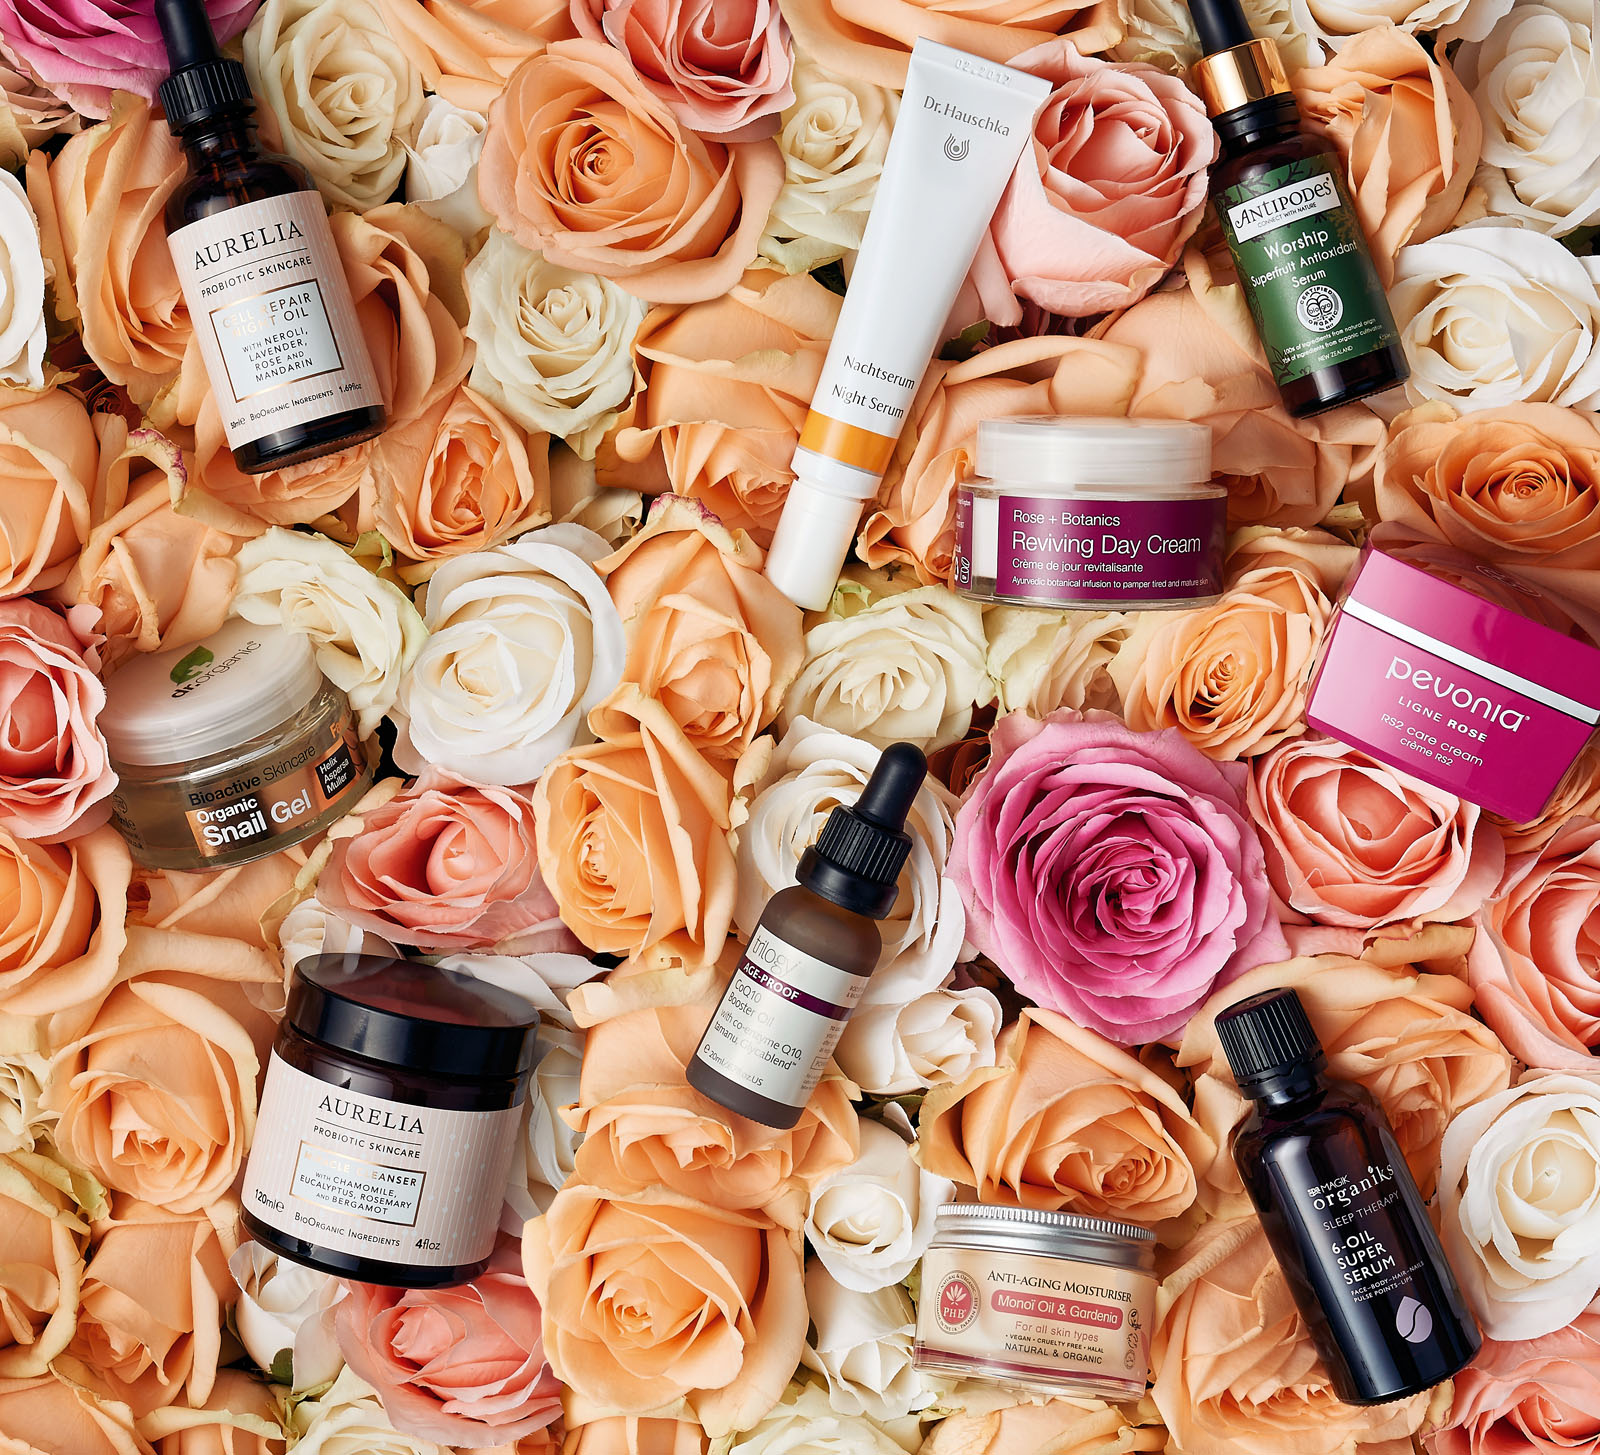 Beauty products on a bed of roses